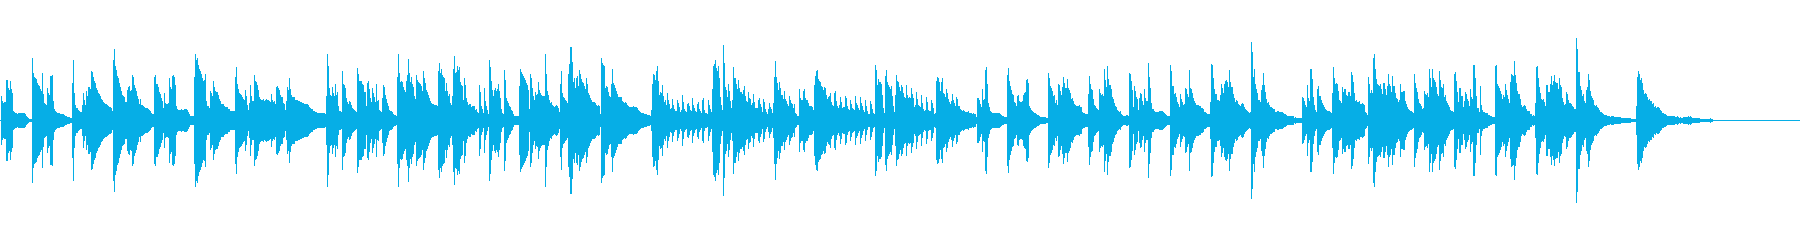 Play accompaniment in a situation where one is thinking alone's reproduced waveform